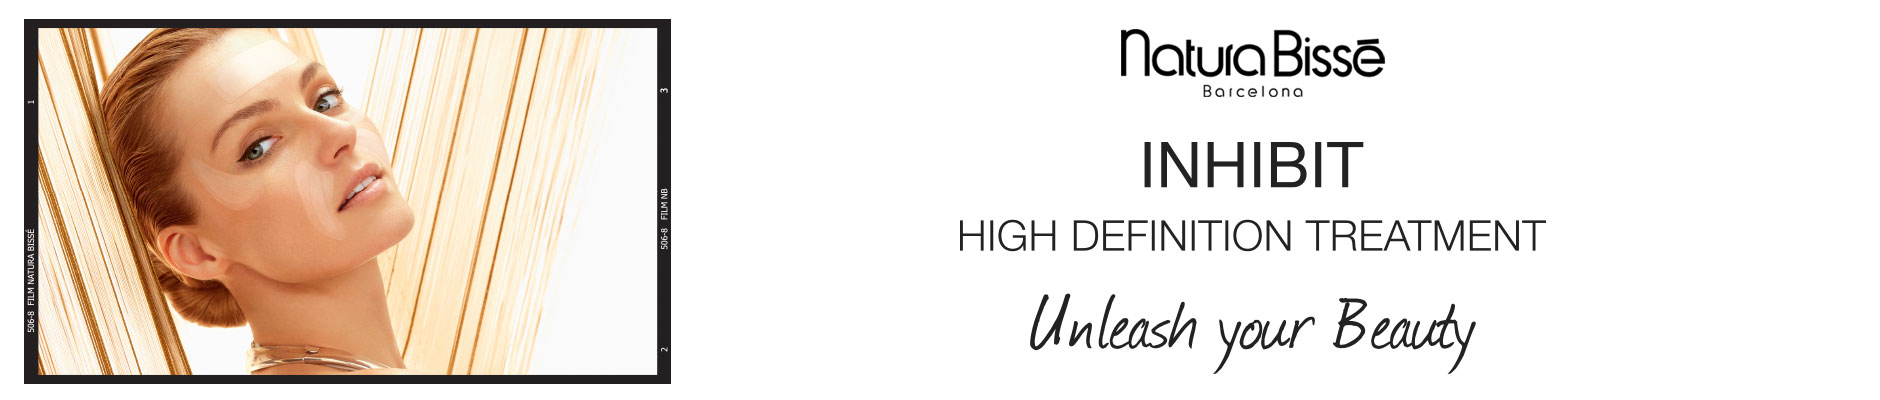 Natura Bisse Barcelona, inhibit - high definition treatment, unleash your beauty